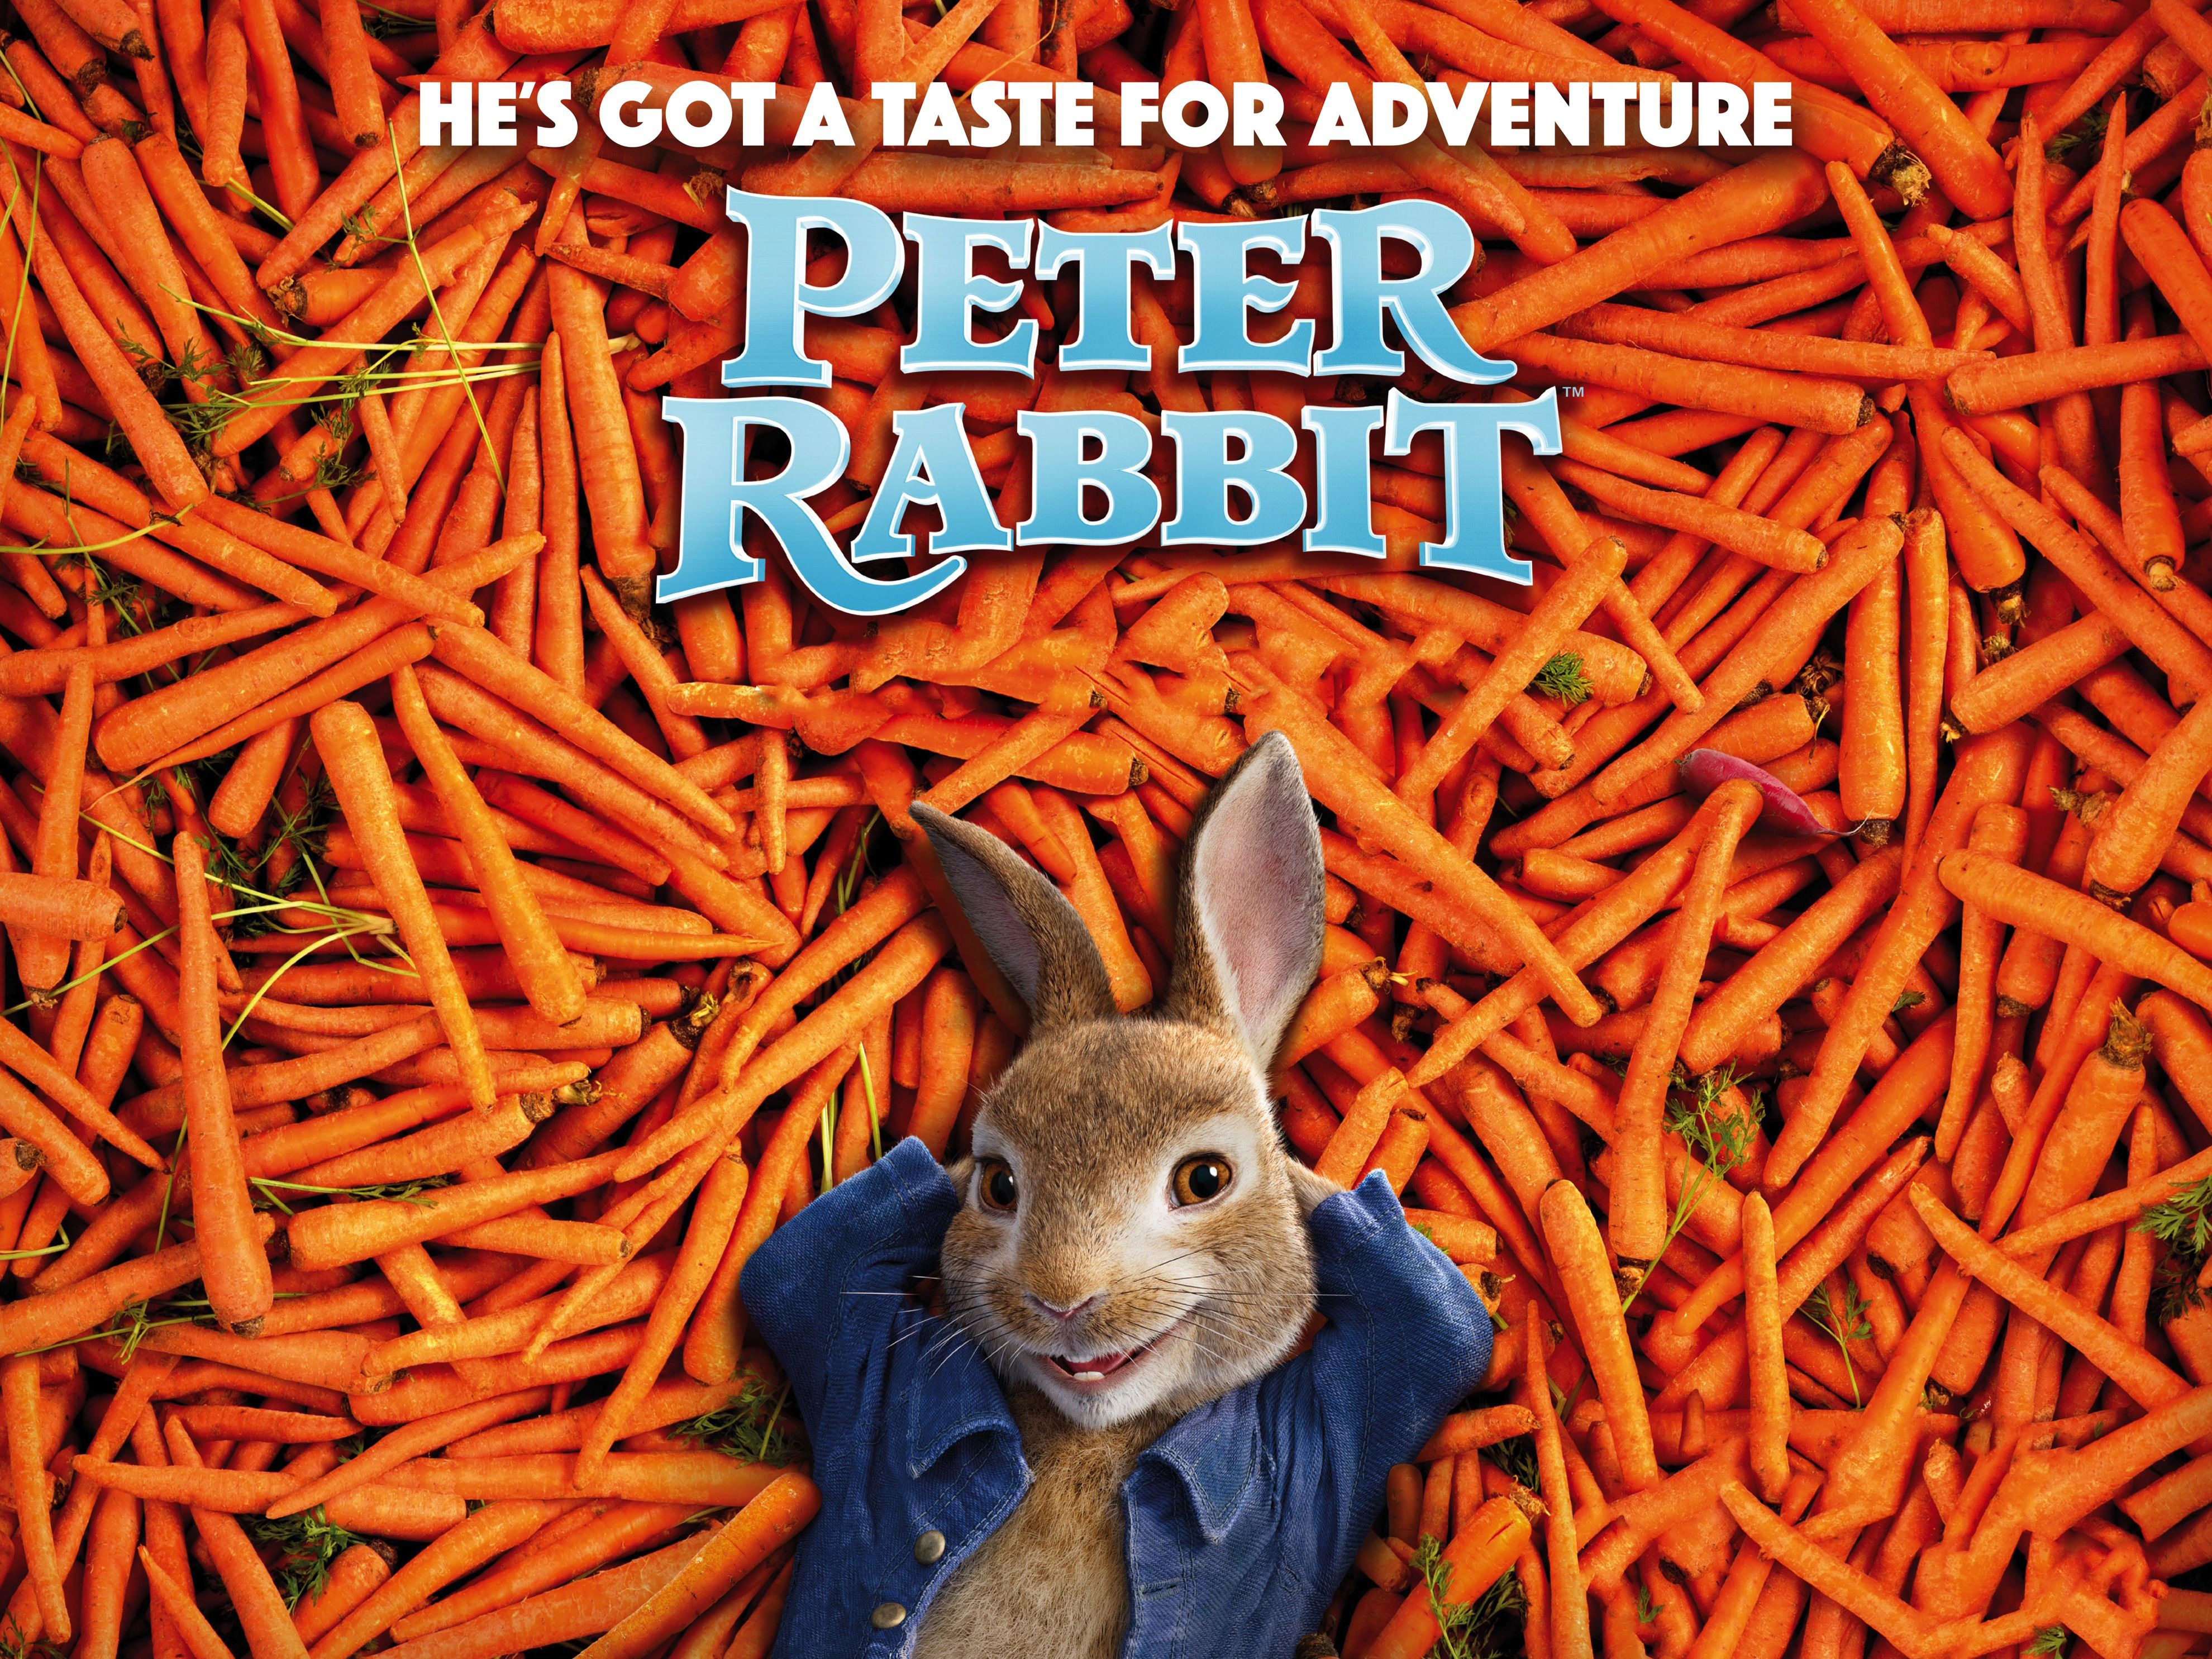 Peter rabbit 2018 hd movies 4k wallpapers images - Peter rabbit movie wallpaper ...